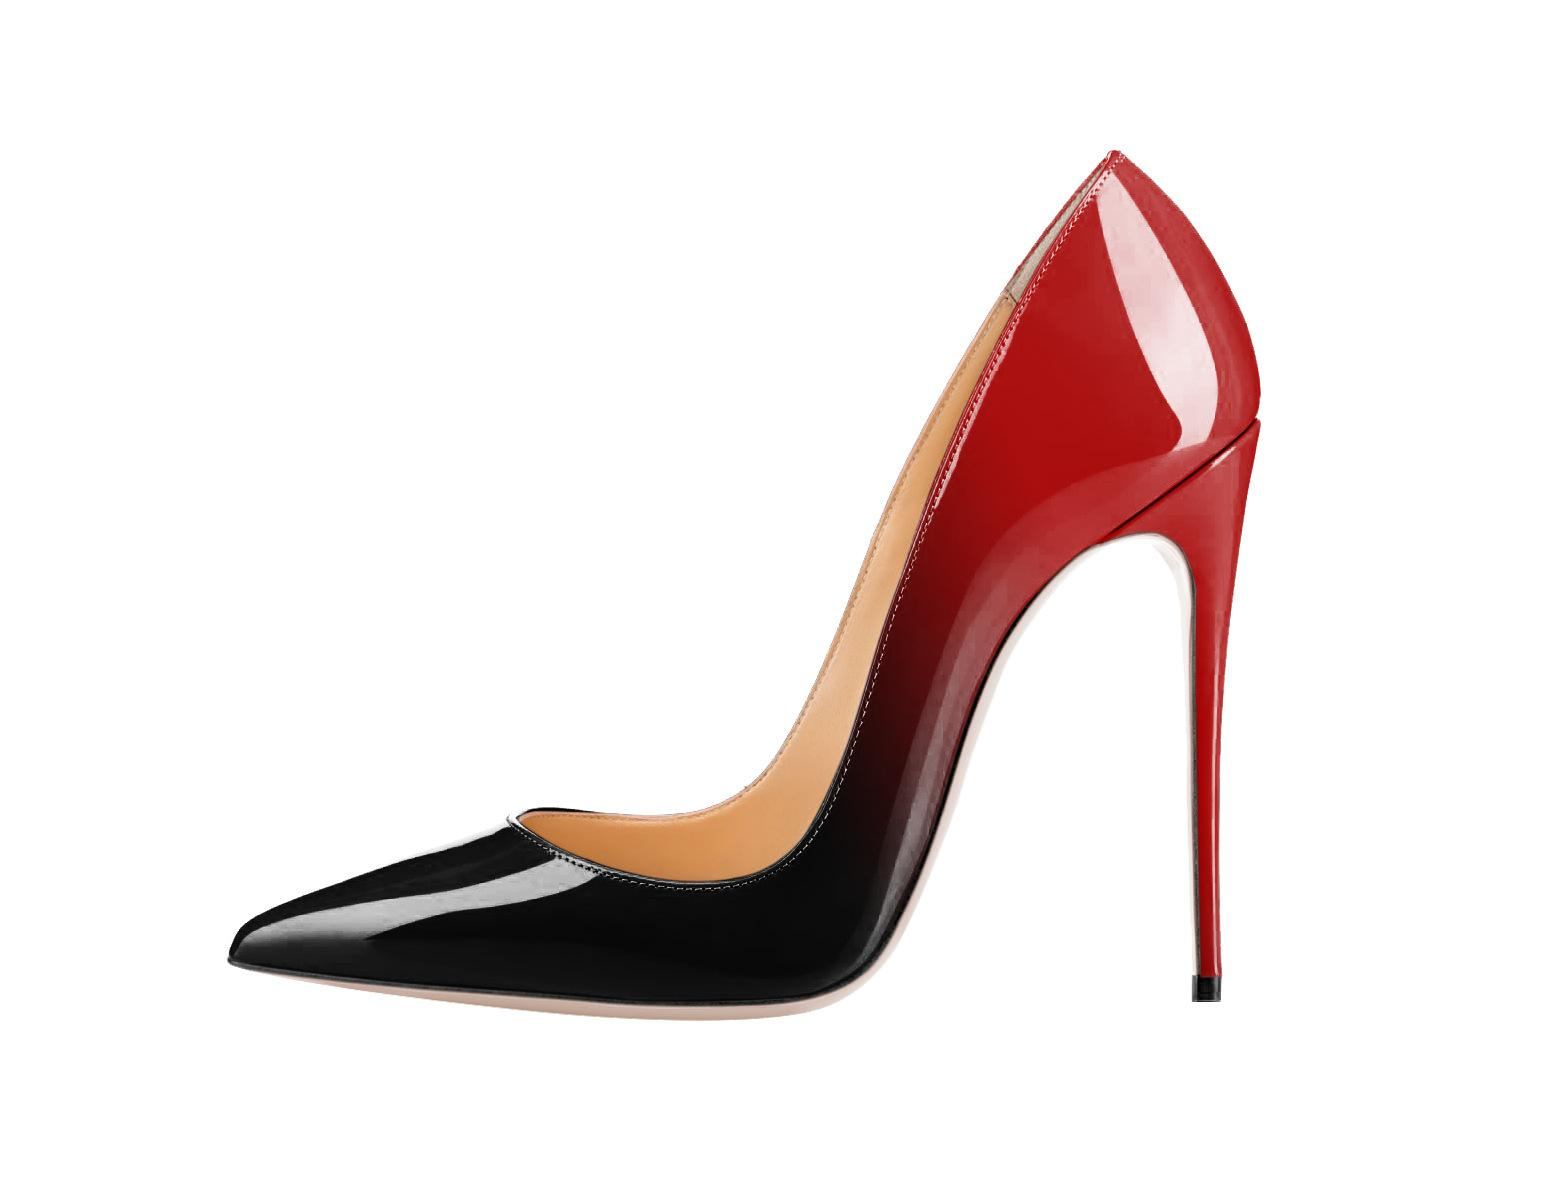 Sexy Gradient Color Shallow Mouth High Heels Shoes Red Bottom Lady Pointed  Toe Leather 12cm Stiletto Heel Pumps Big Size 34 46 Cheap Shoes For Men  Italian ... c6c983c2a205